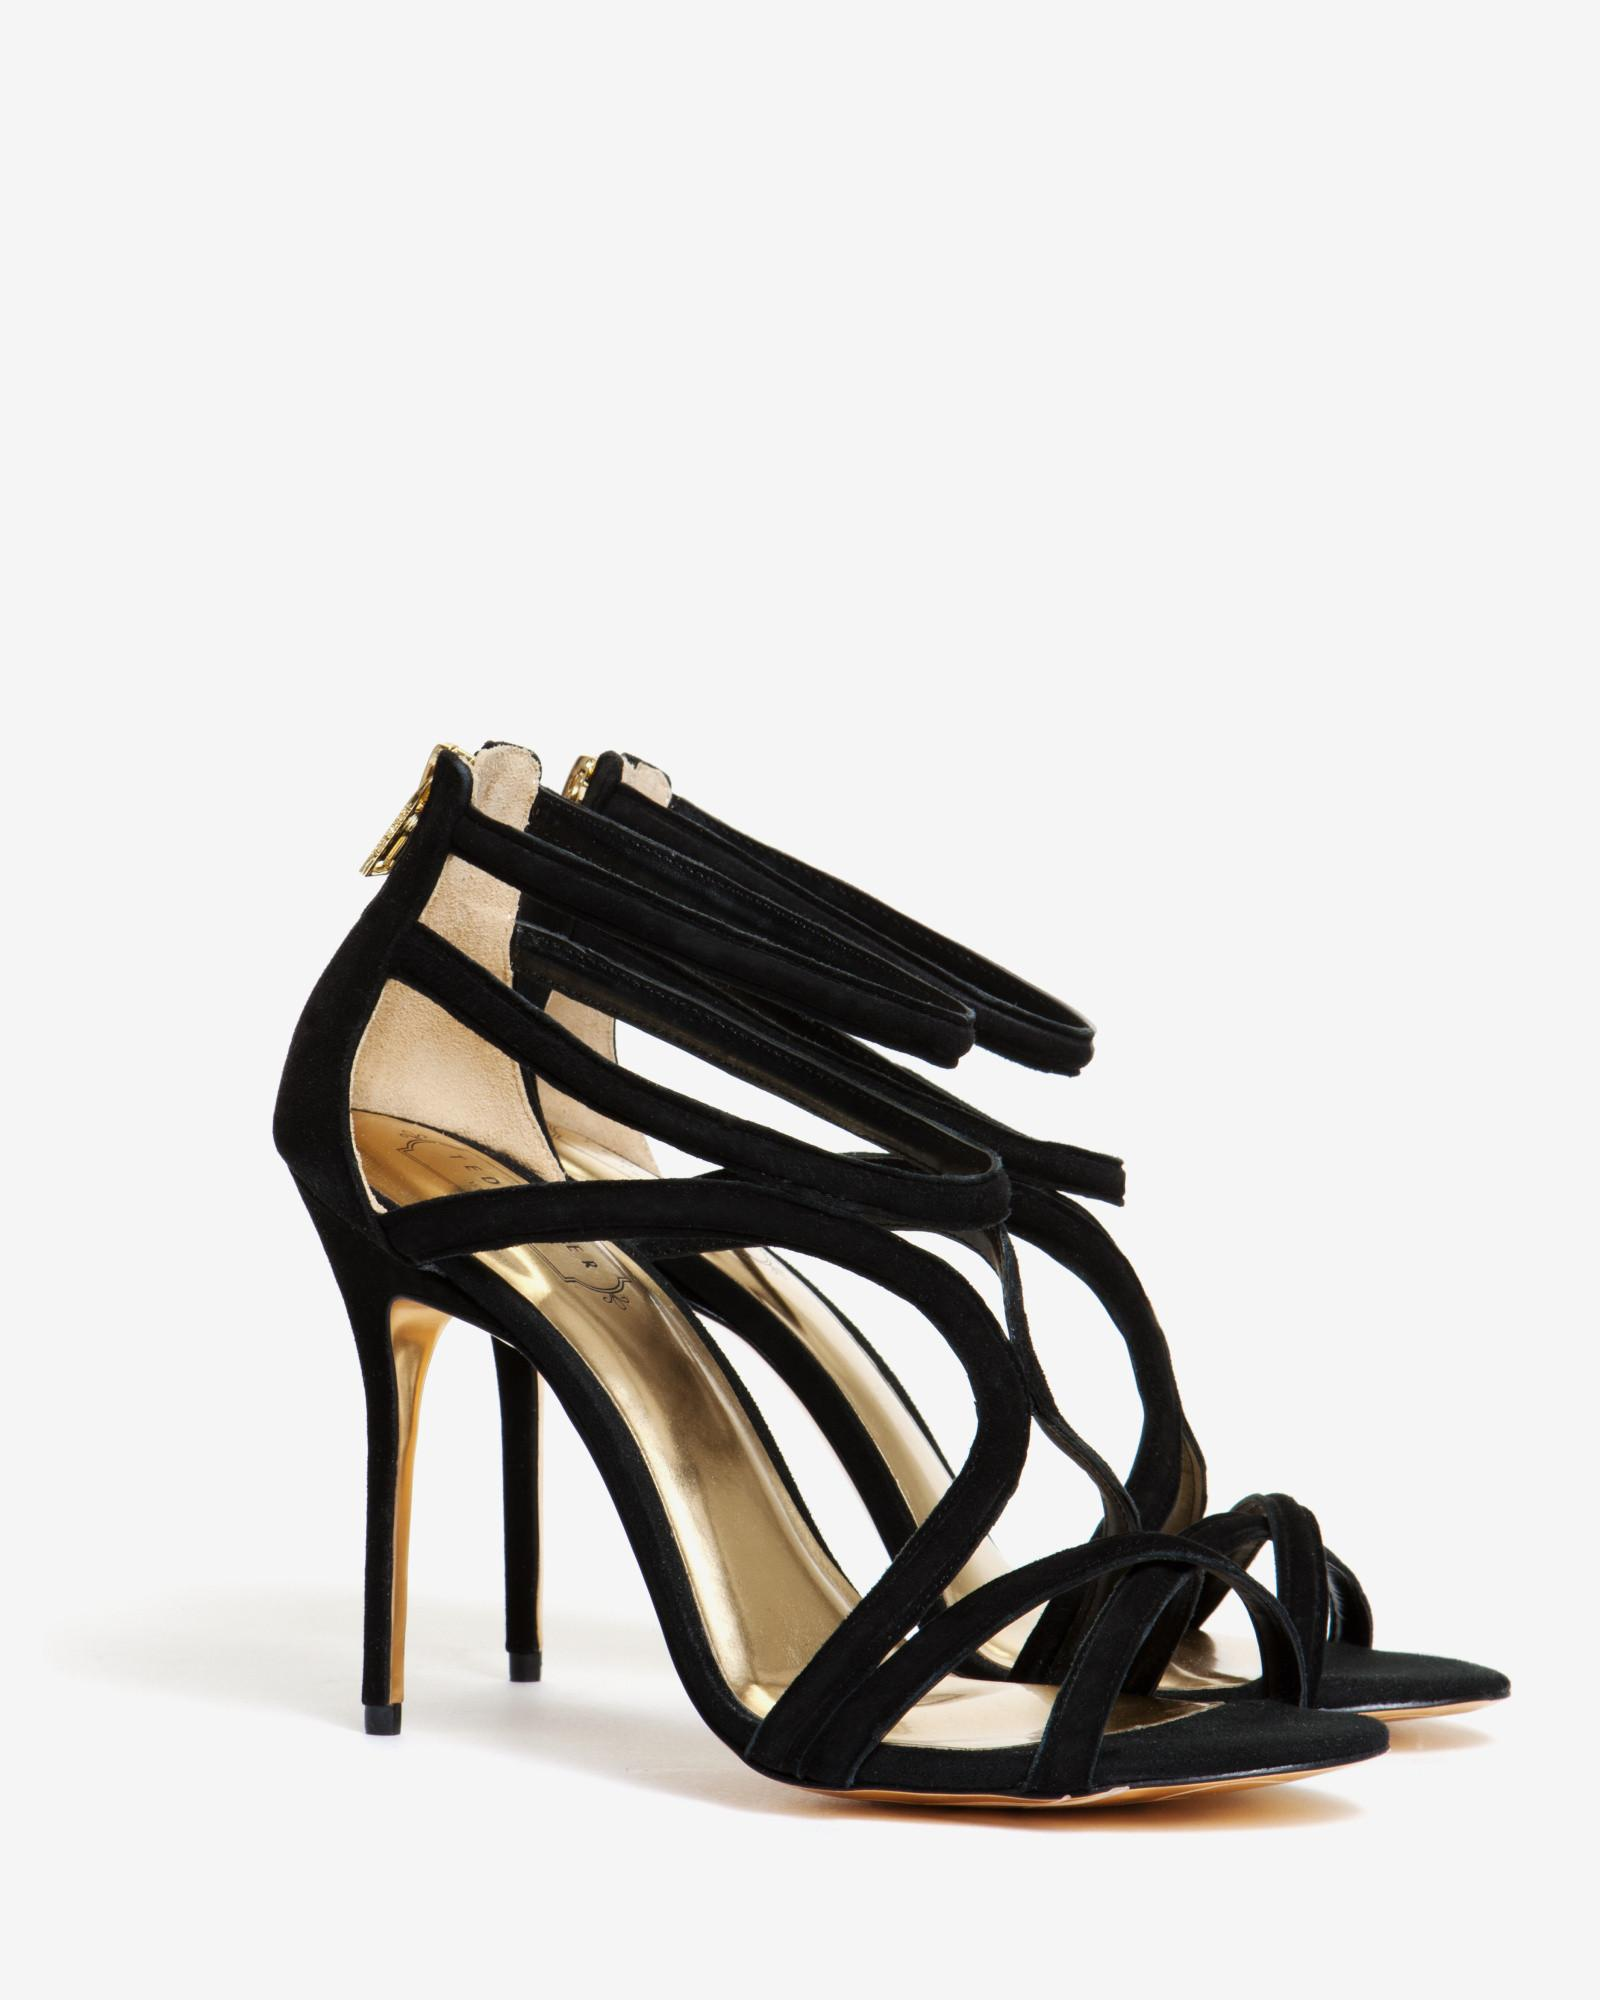 b3ac2f4b410 Ted Baker Suede Wrap Around Gladiator Sandals in Black - Lyst